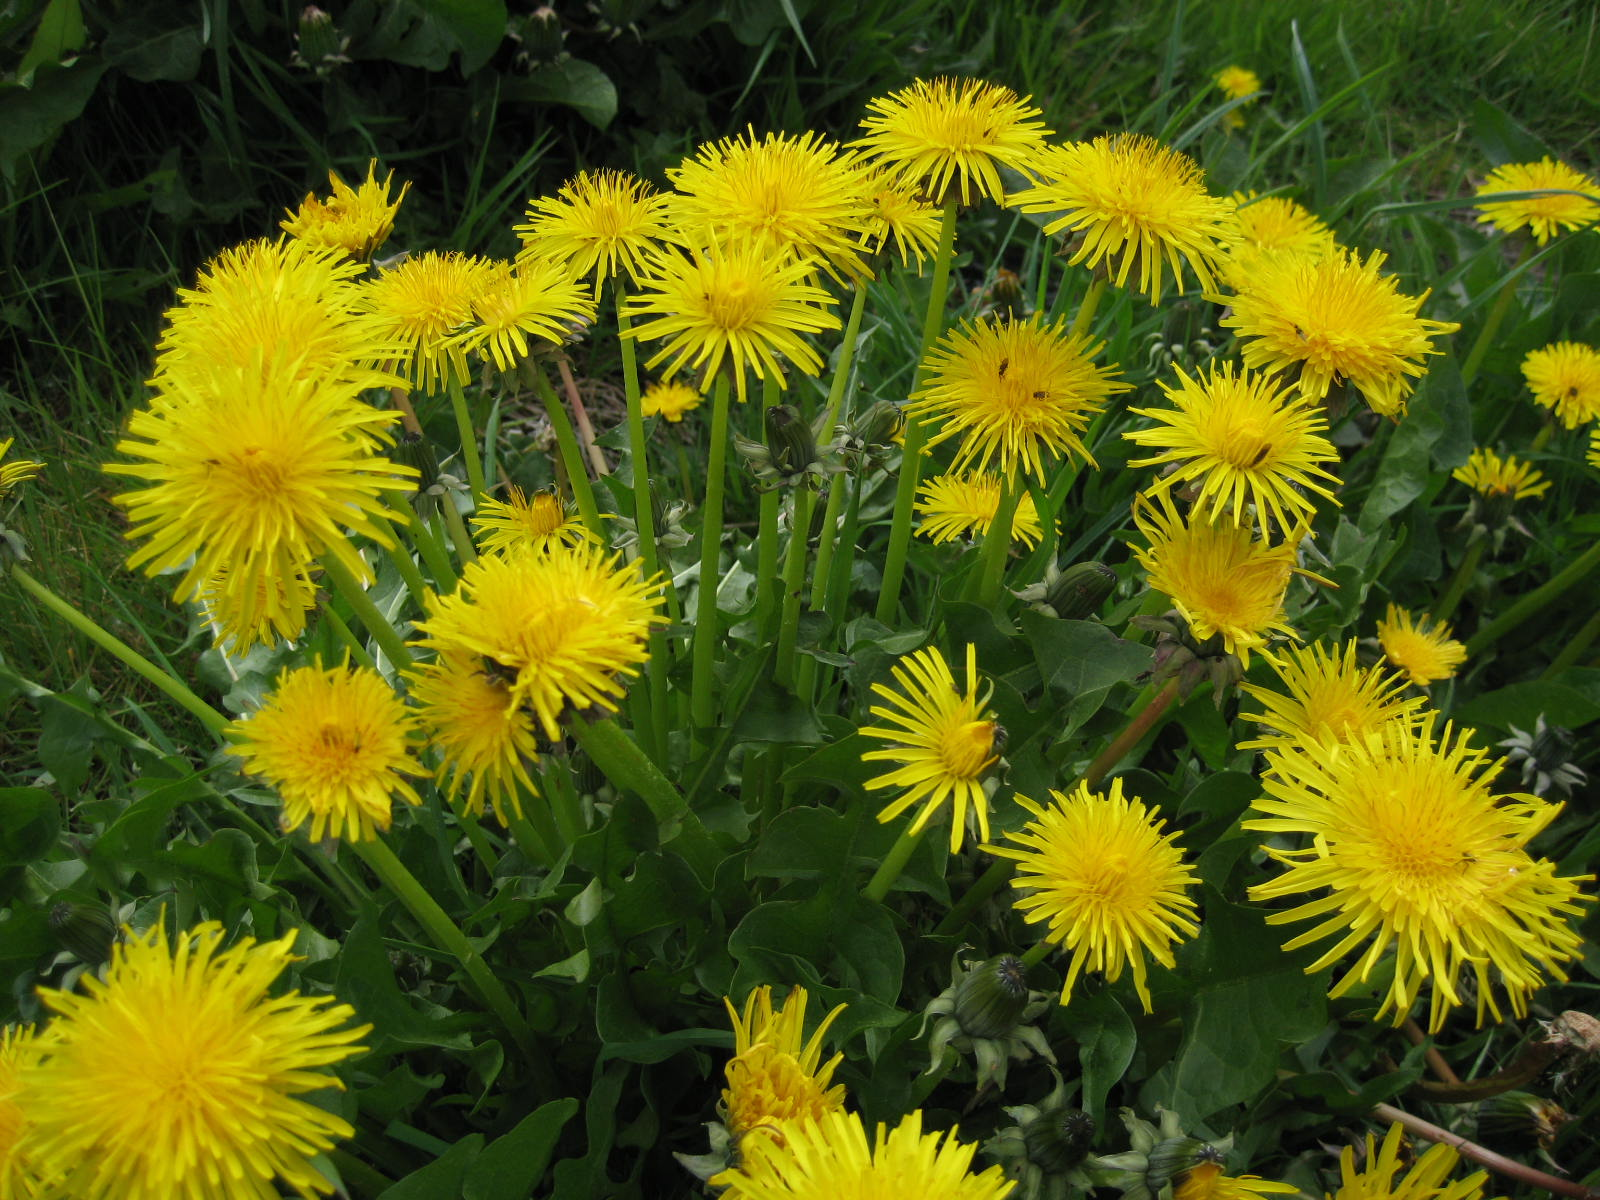 Image: Dandelion root, a cancer cell killer, has a long history as medicine